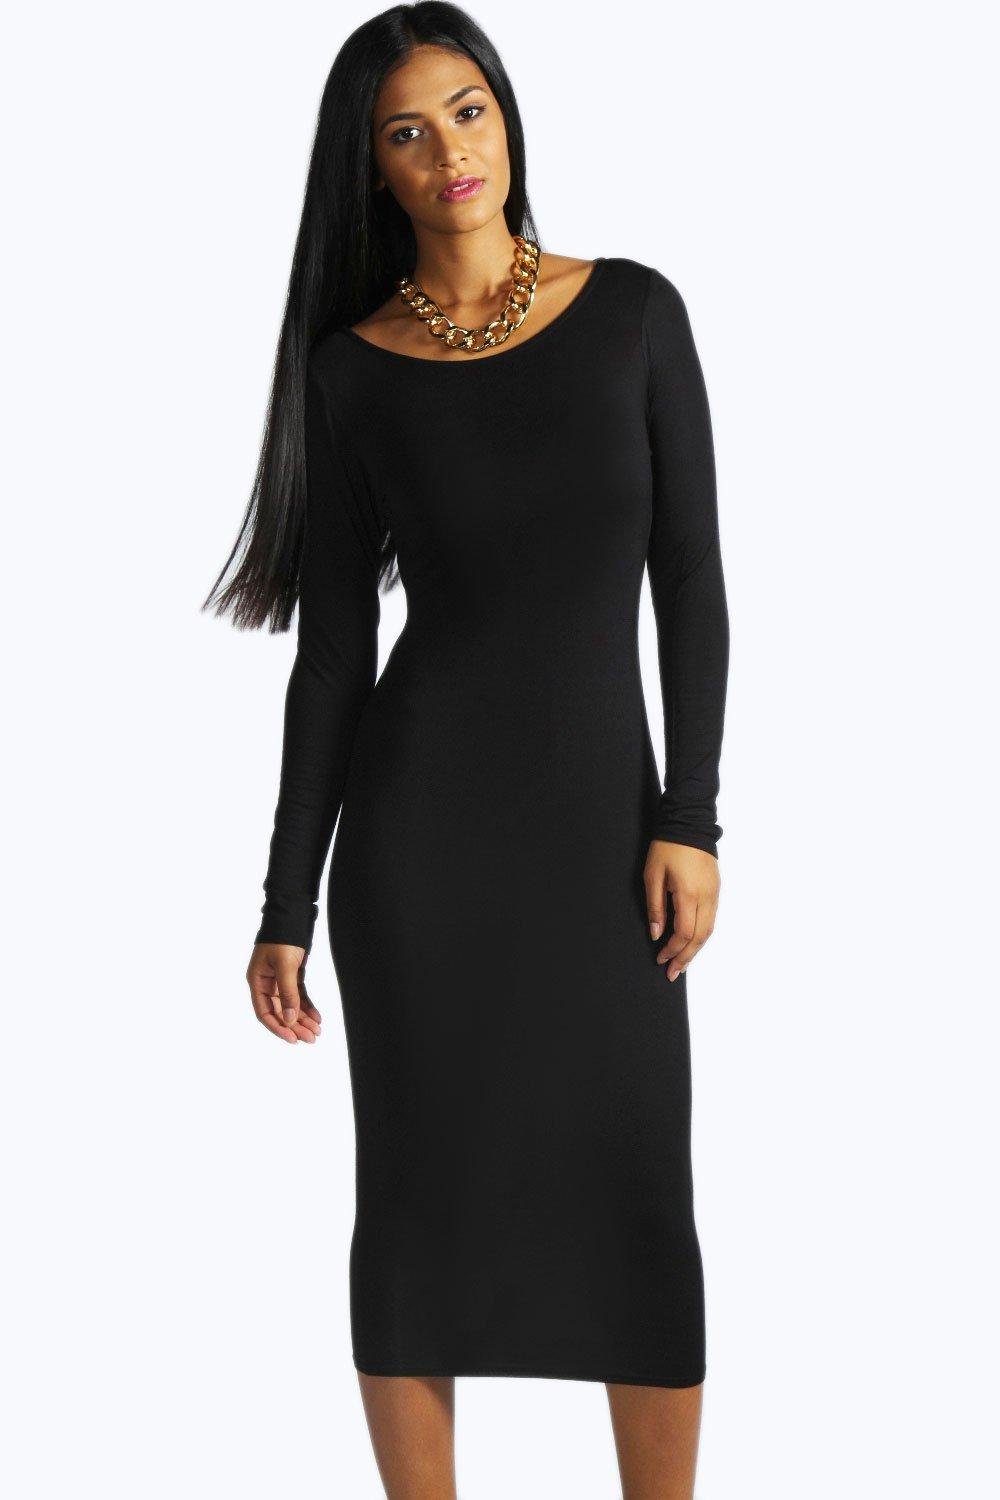 Looking for wholesale bodycon dresses cheap online? allshop-eqe0tr01.cf offers a large selection of discount black midi bodycon dresses, mini bodycon printed dresses in bulk.